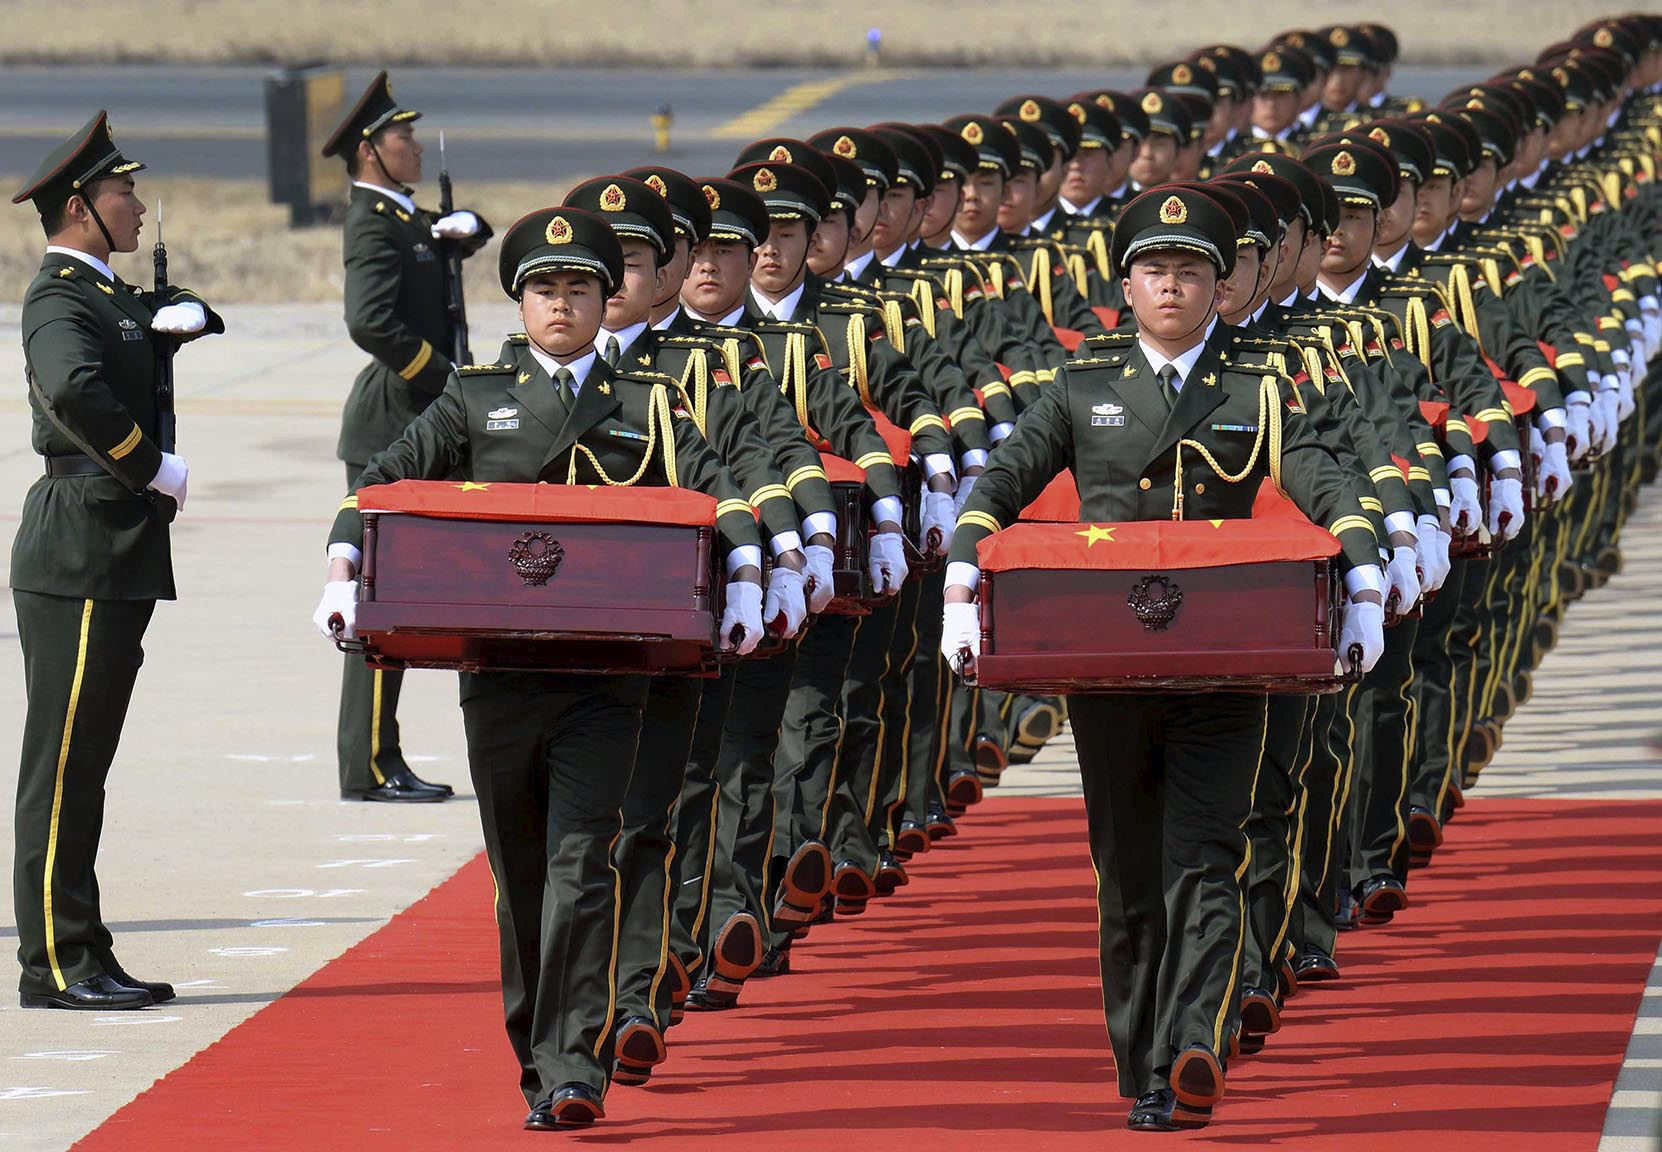 Soldiers of the Chinese People's Liberation Army carry coffins containing remains of soldiers of the Chinese People's Volunteers who died in the Korean War, at the Taoxian International Airport of Shenyang